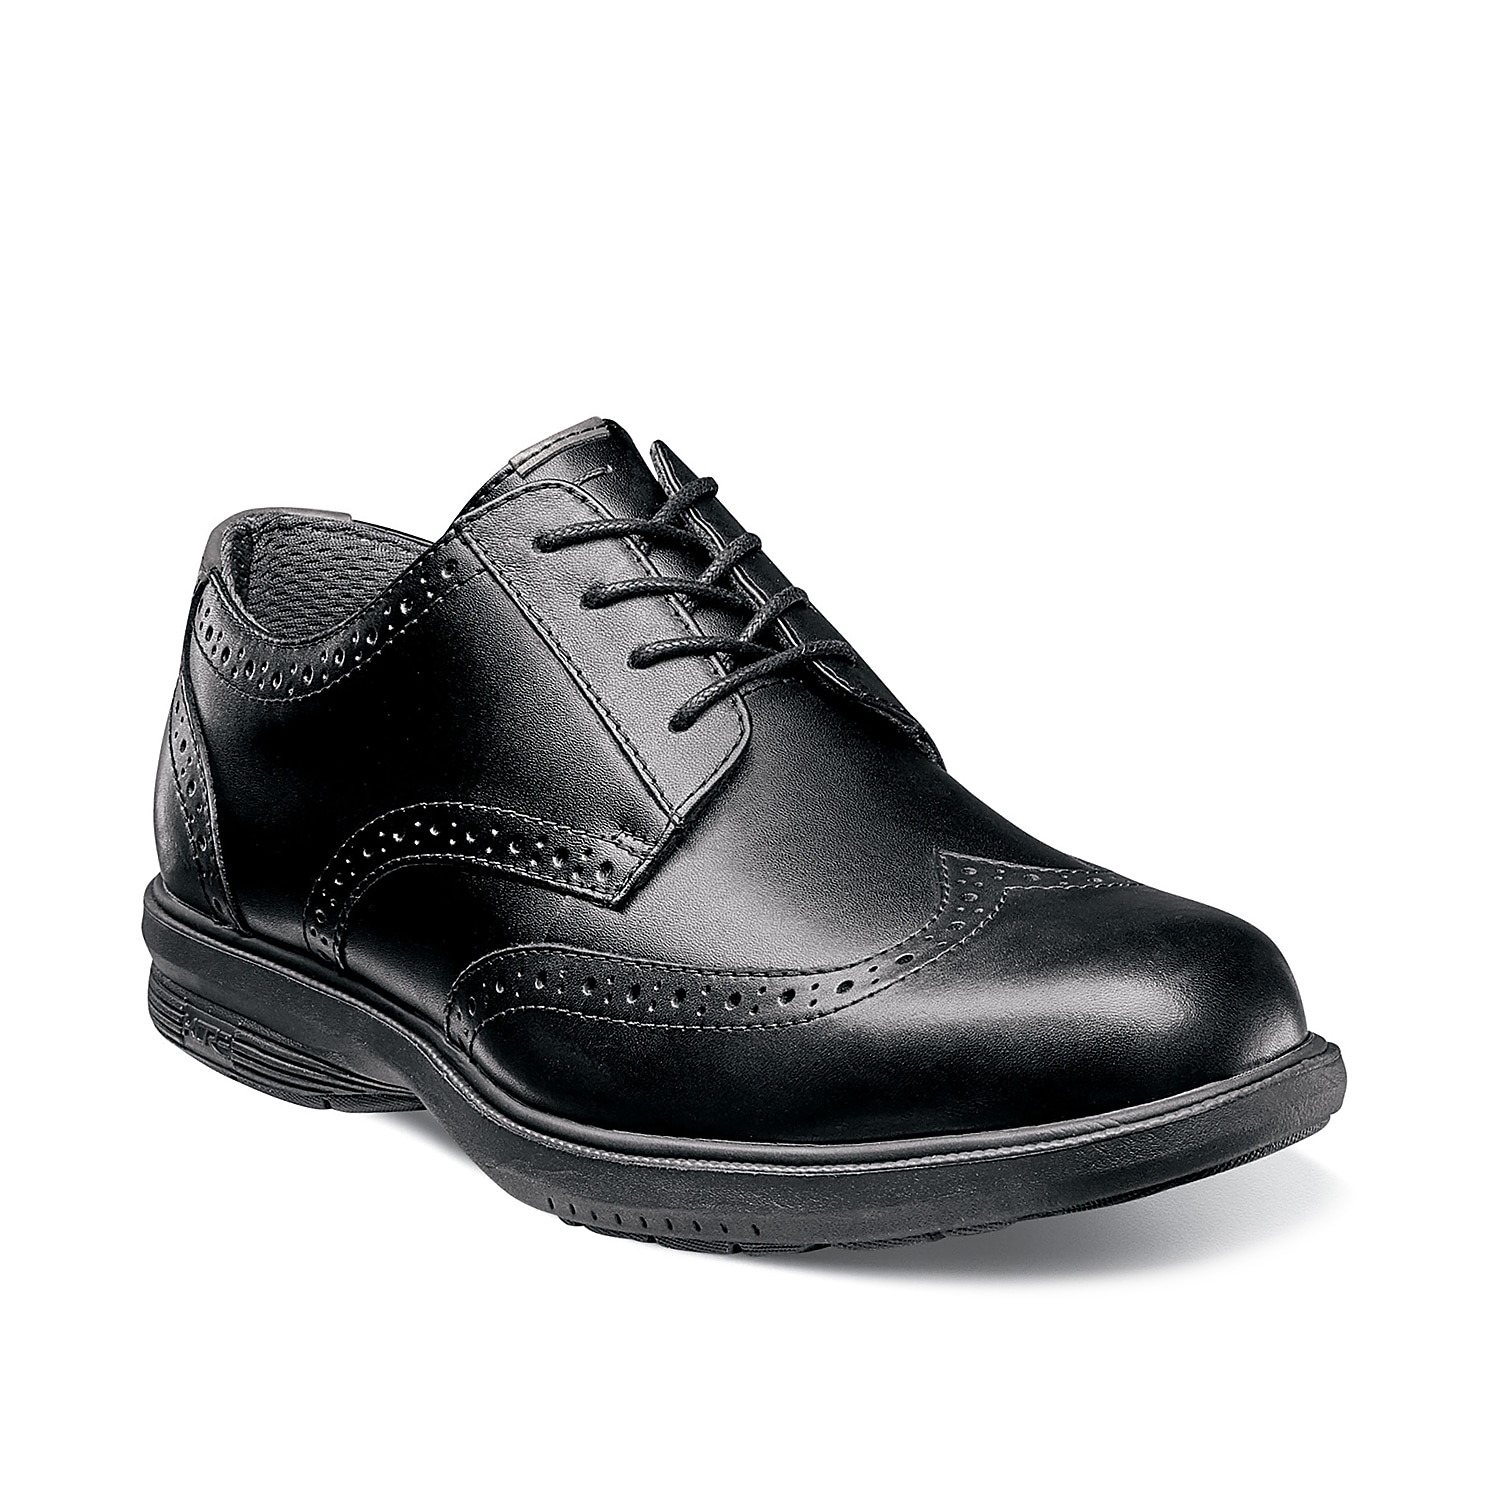 Epitomizing style, the Maclin Street oxford from Nunn Bunn lends sophistication wherever you go. Boasting of a hand burnished leather upper, this lace-up dress shoe is complemented by layers of lasting comfort and a sporty-inspired sole.